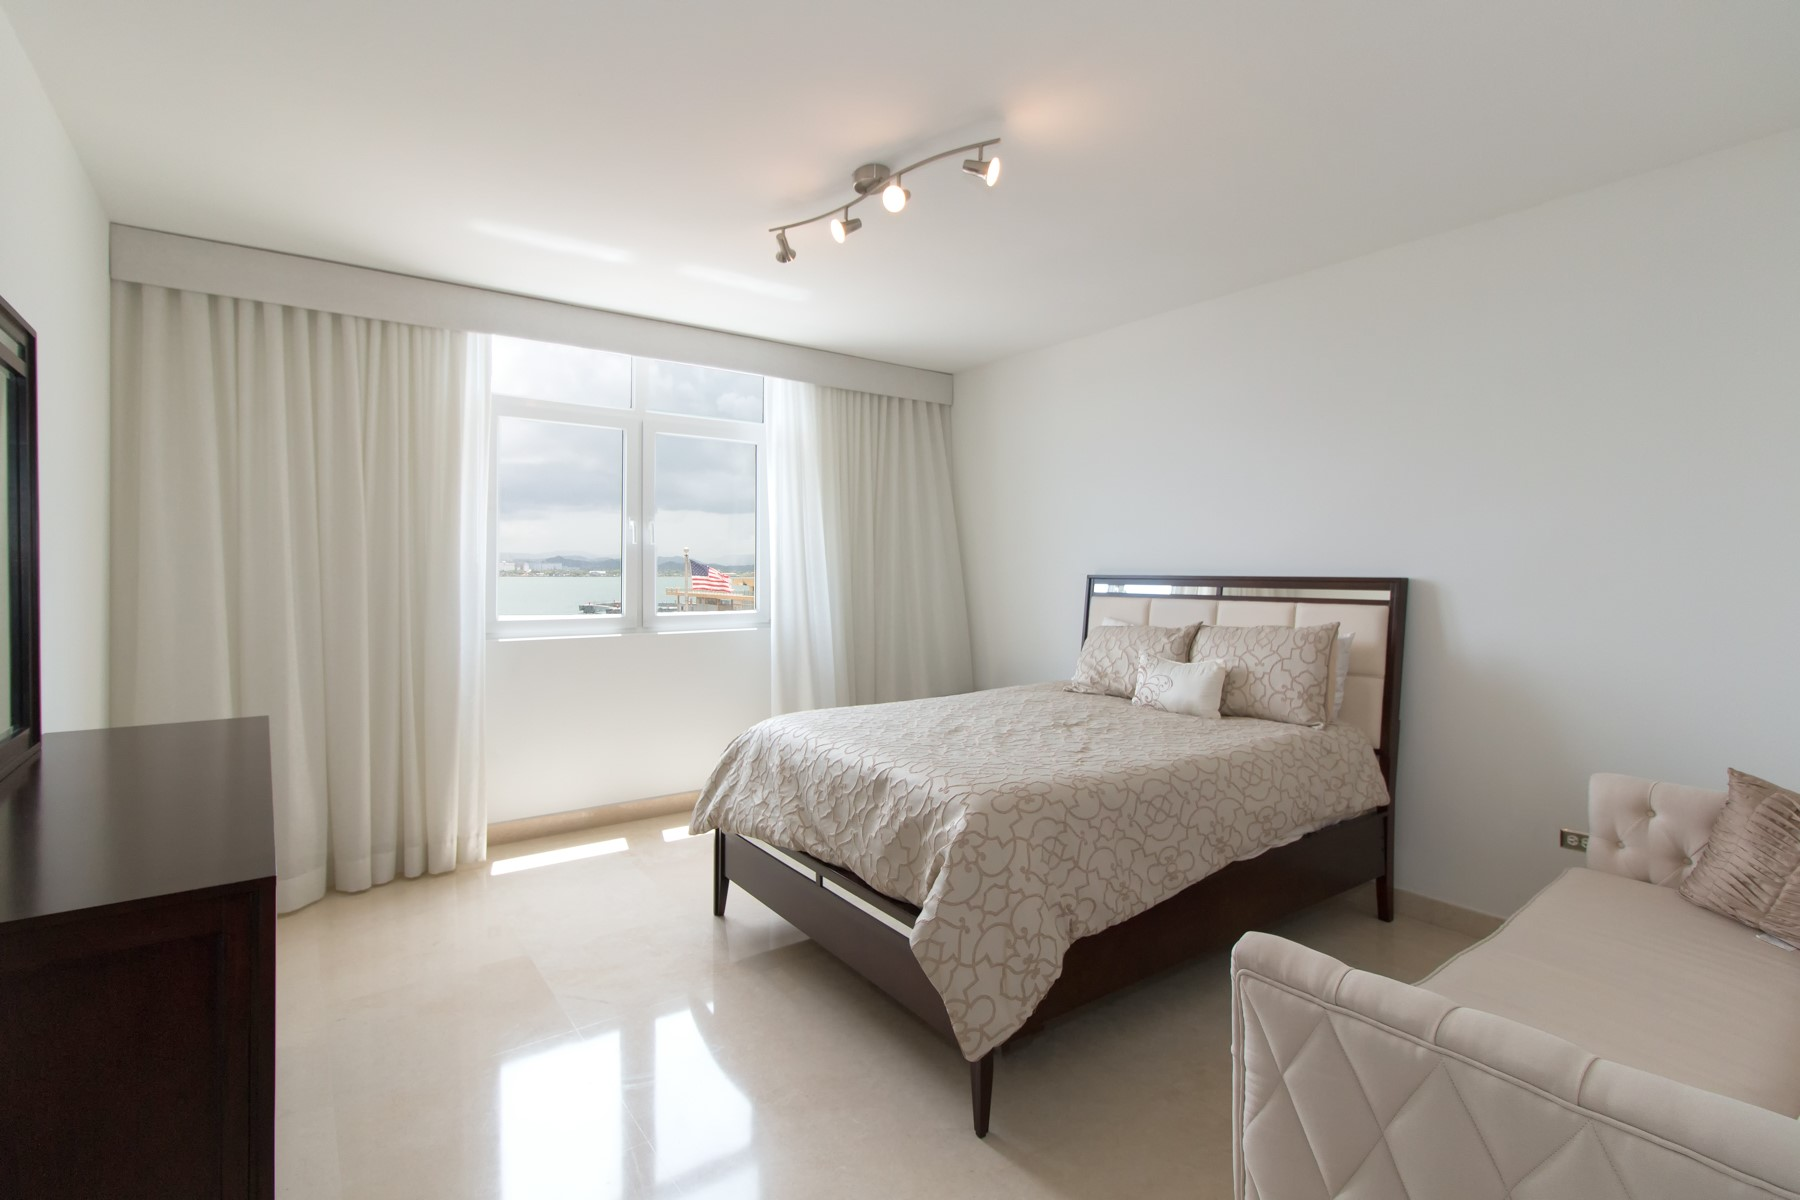 Additional photo for property listing at Contemporary Harbor Front Residence in OSJ 105 Paseo Gilberto Concepcion de Gracia Apt 403 San Juan, Puerto Rico 00901 Puerto Rico